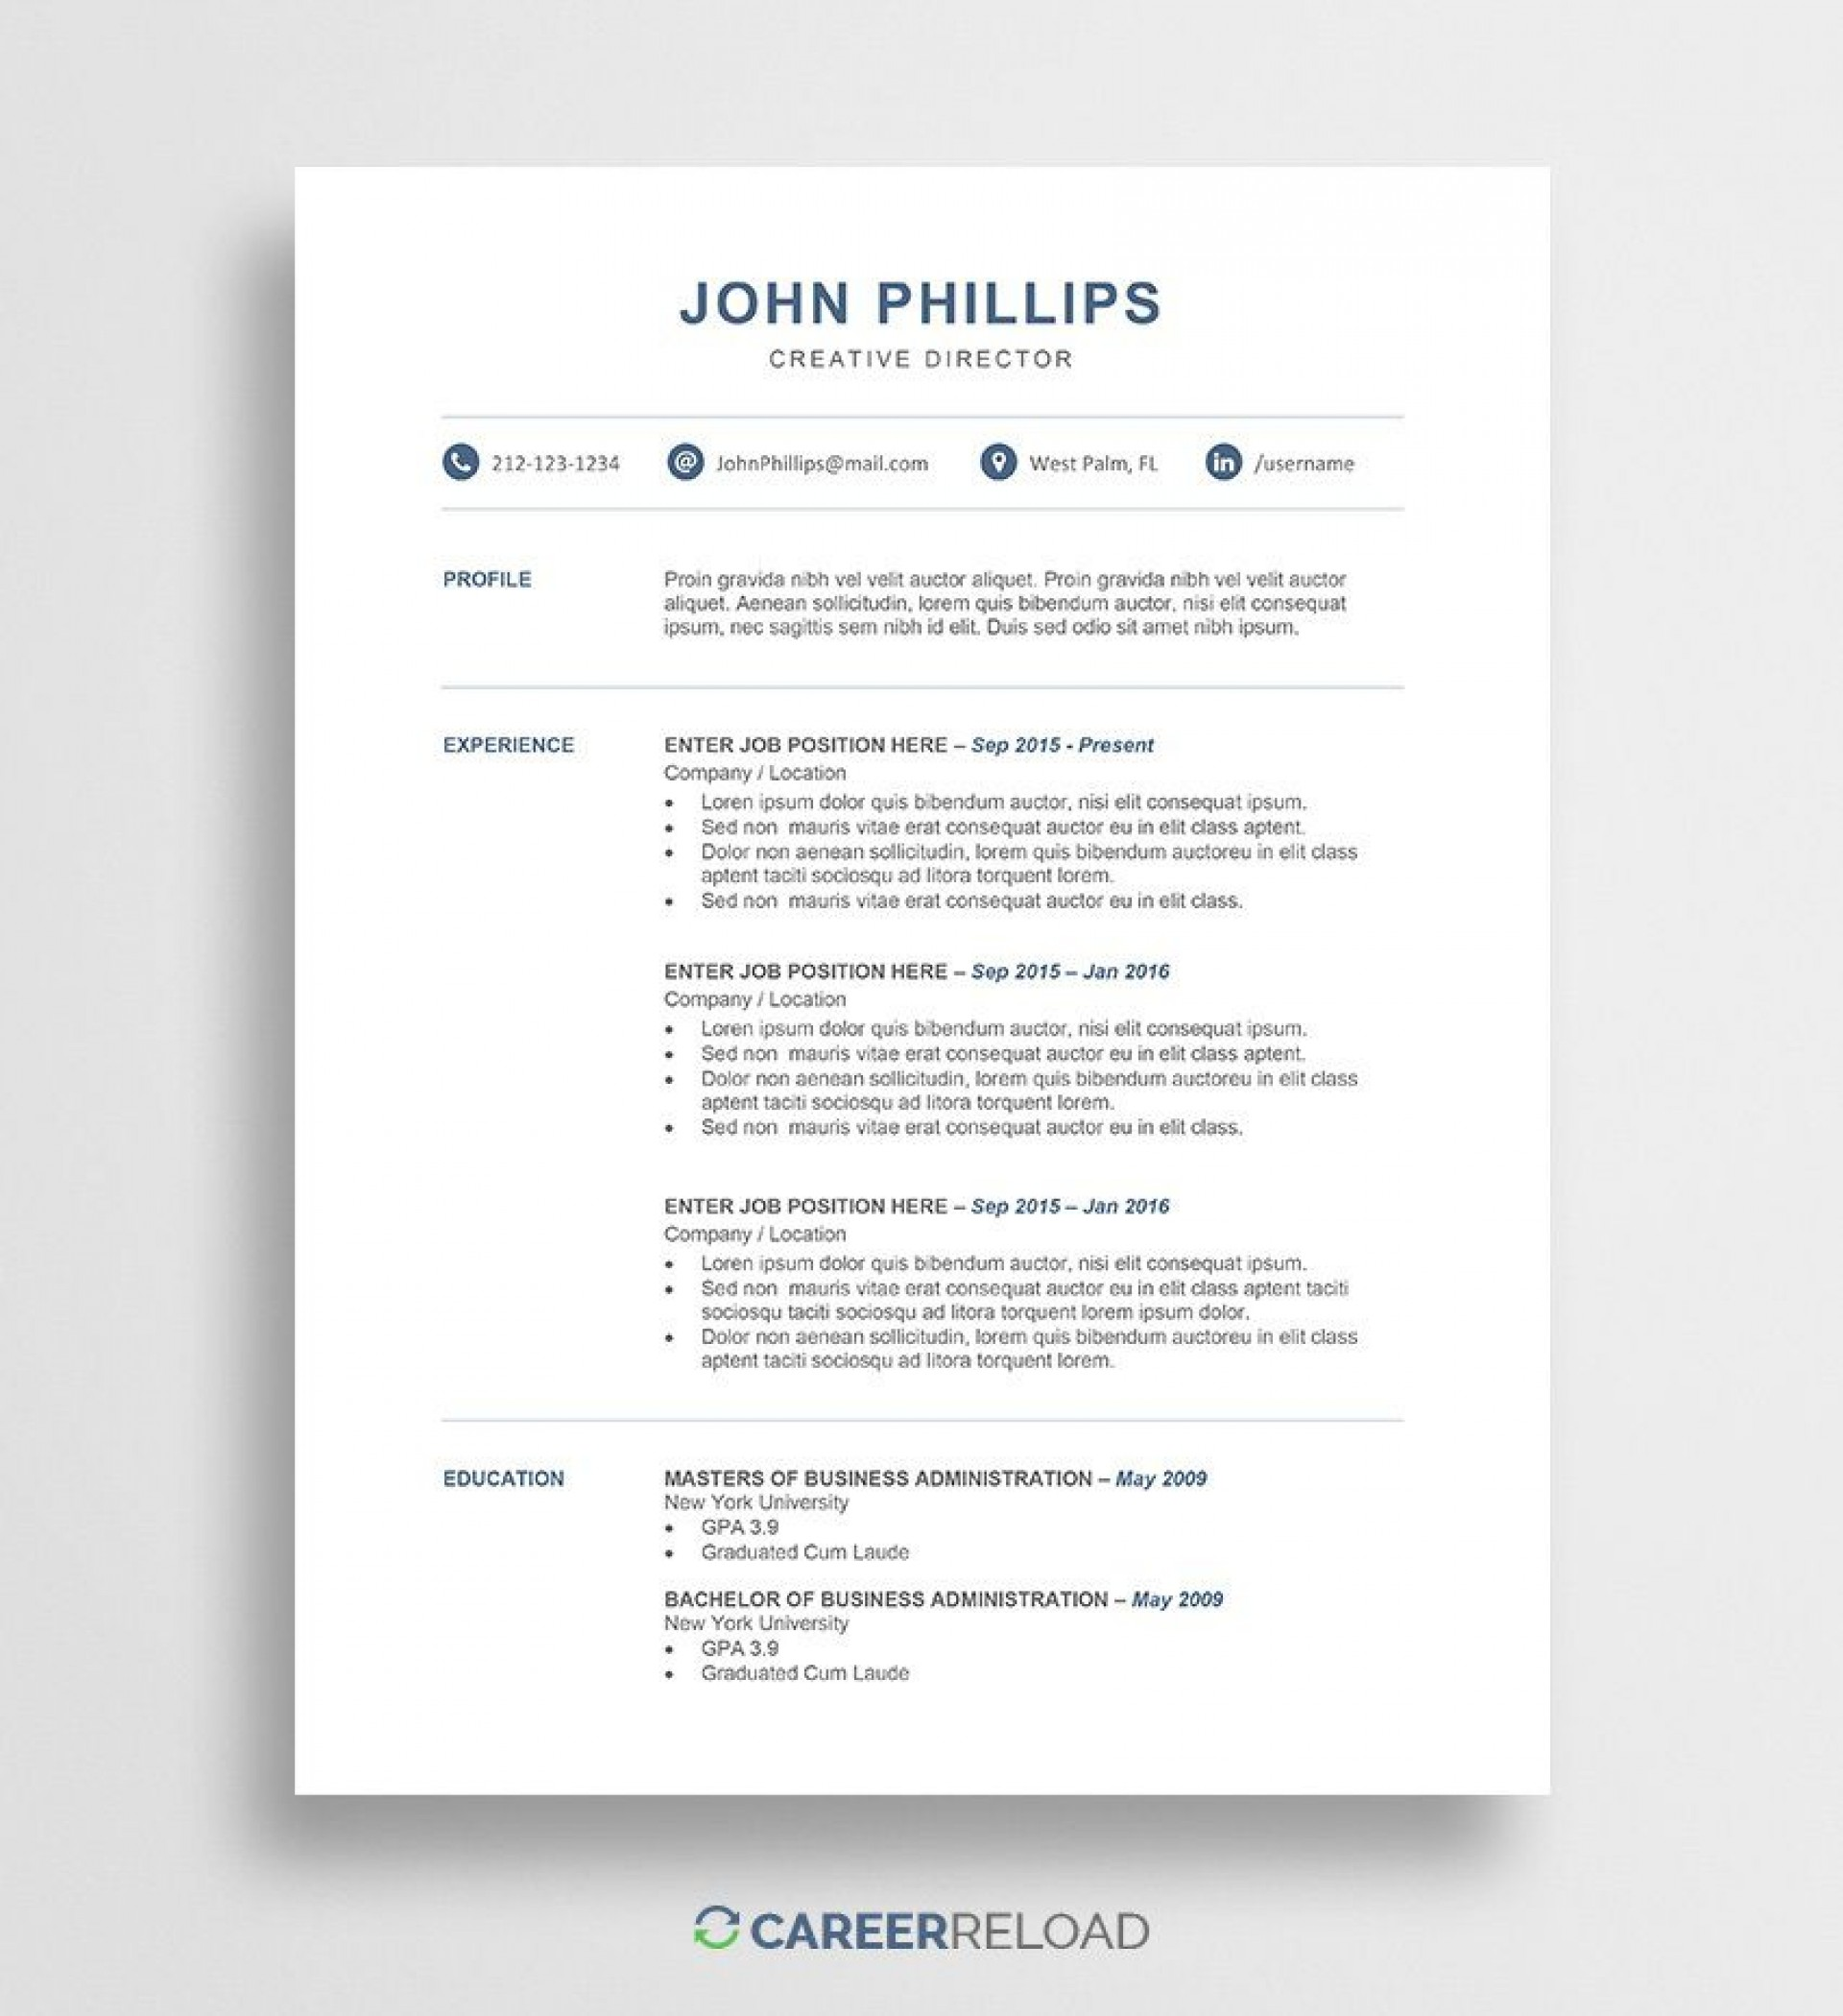 011 Marvelou Professional Resume Template Free Download Word Picture  Cv 2020 Format With Photo1920